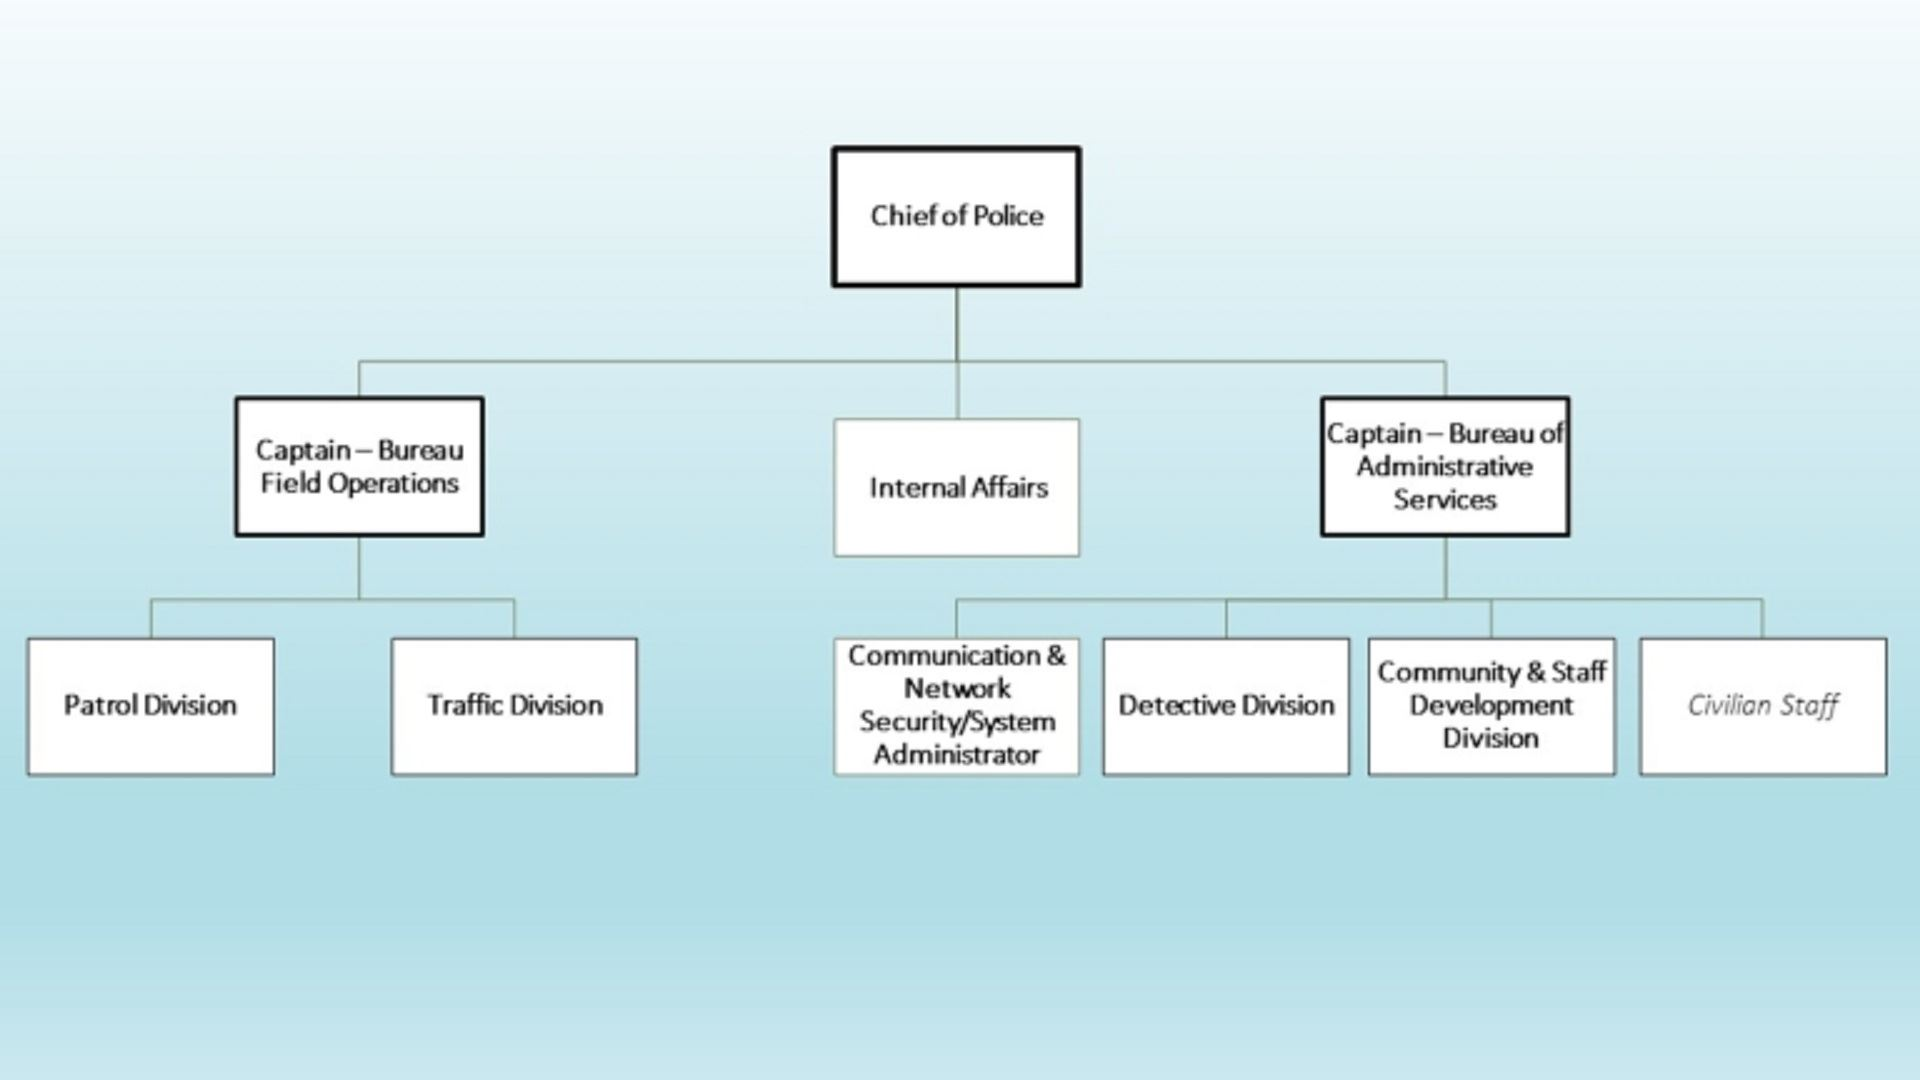 Organizational Chart for the Bureau of Administrative Services